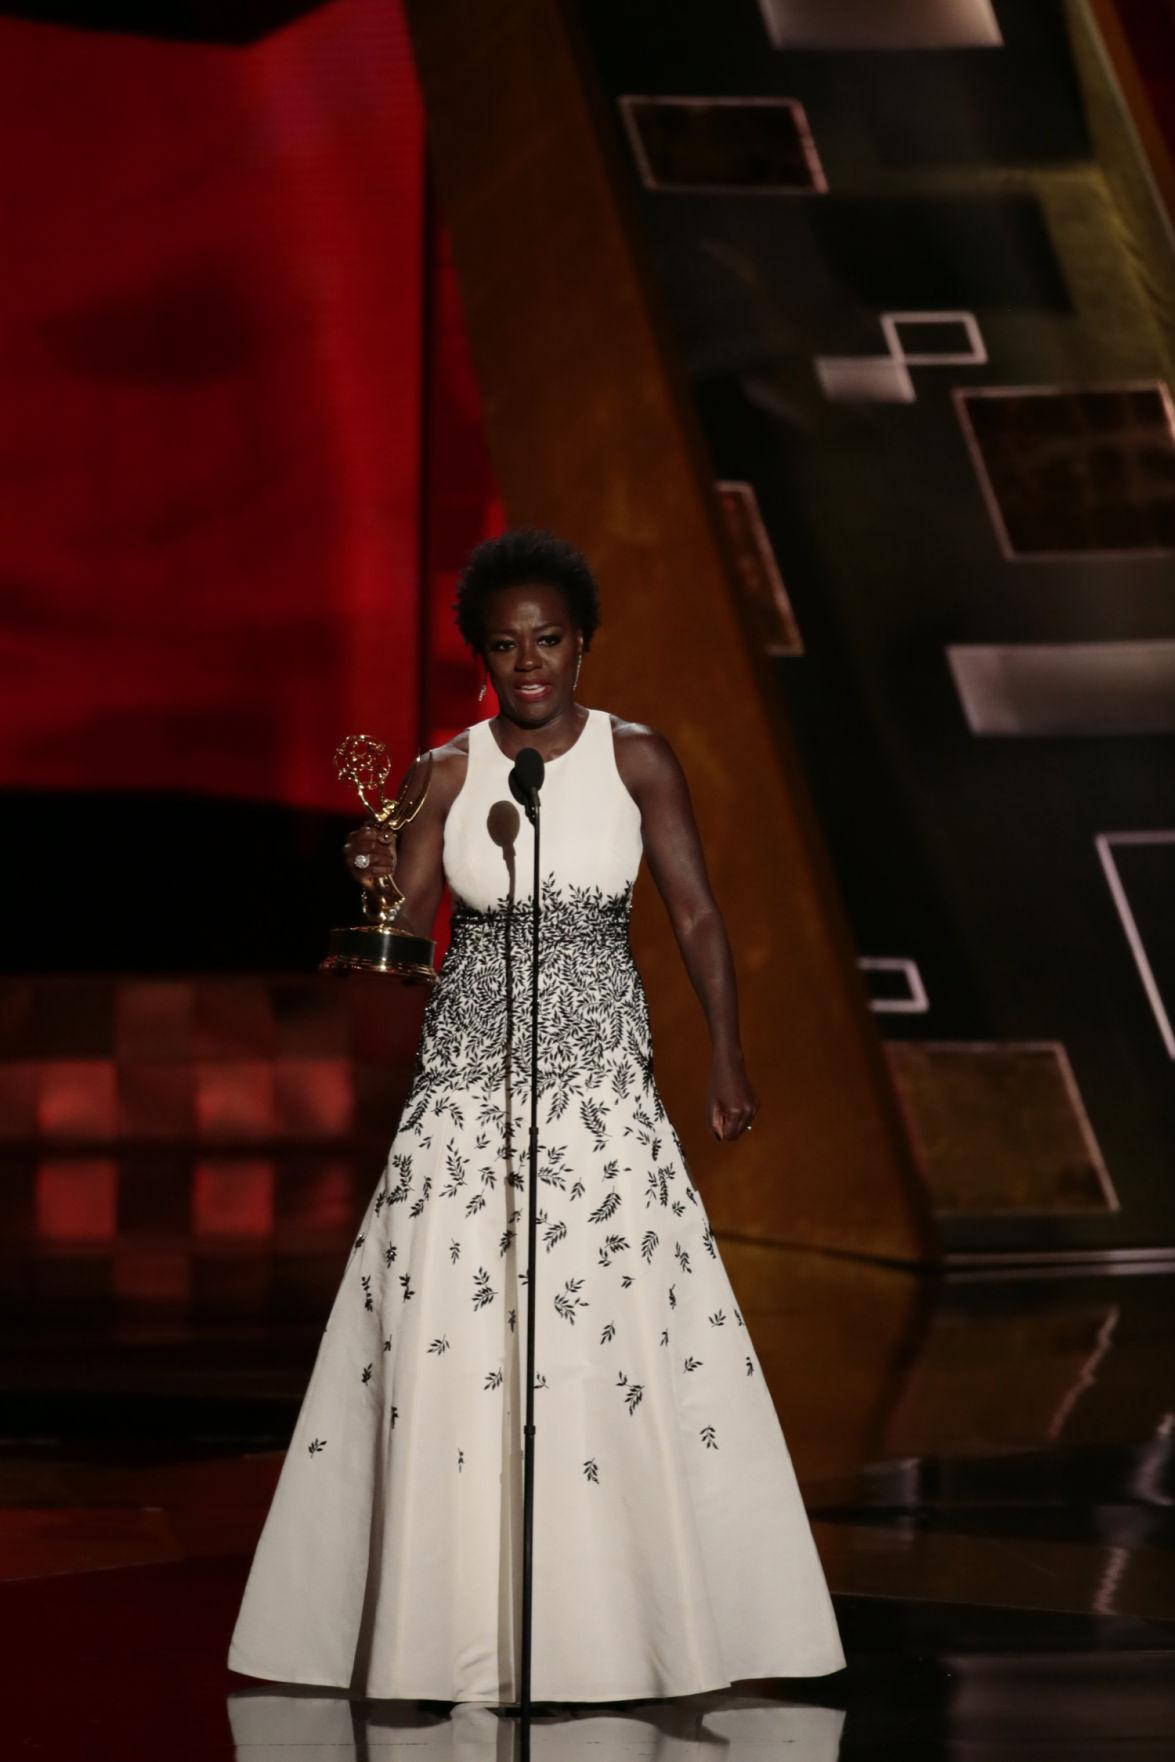 Viola Davis during the 67th Annual Primetime Emmy Awards at the Microsoft Theater in Los Angeles on Sunday, Sept. 20, 2015. (Robert Gauthier/Los Angeles Times/TNS)